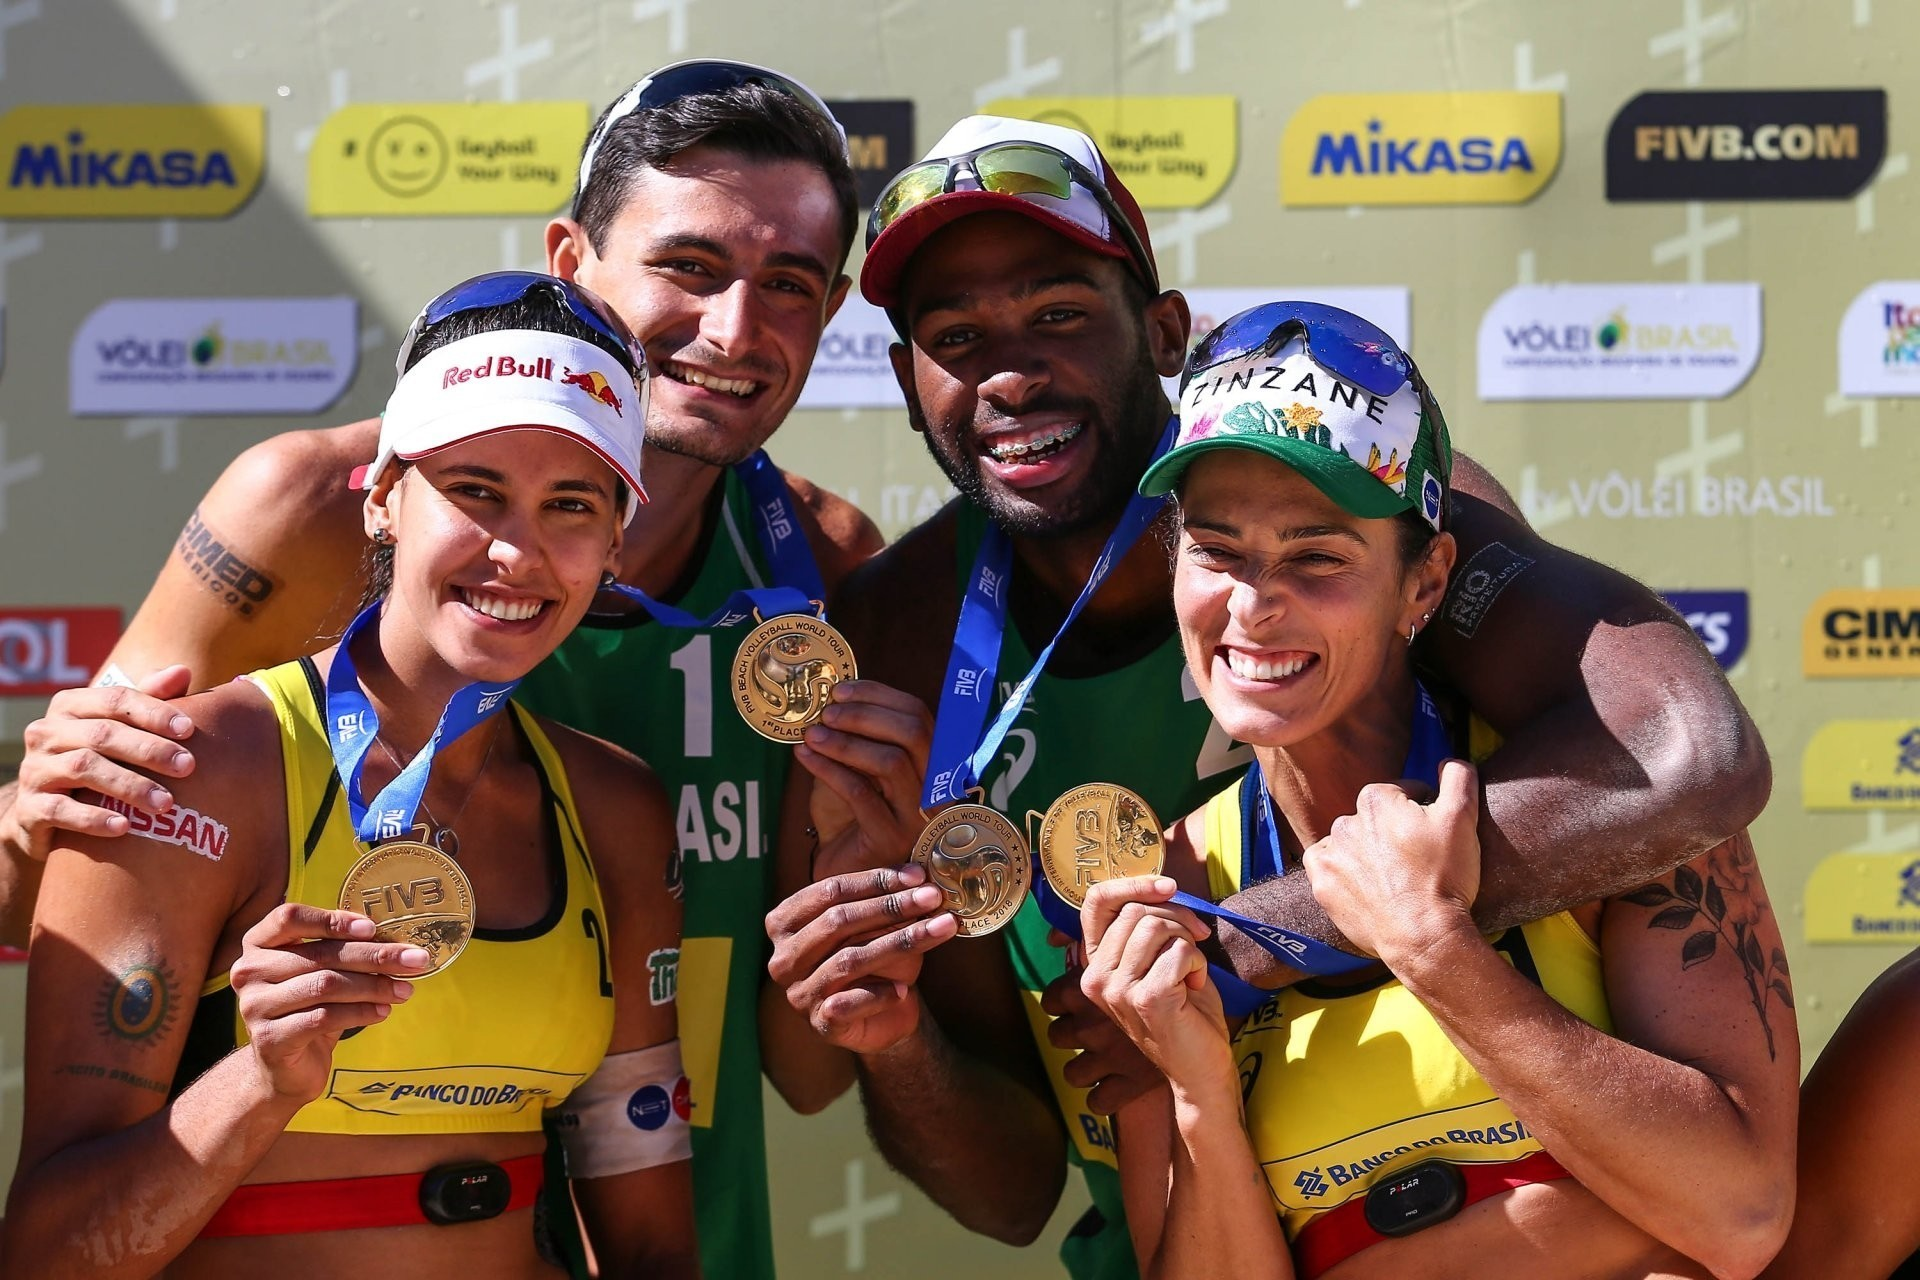 The winners of Itapema in 2018 - Barbara and Duda and Evandro and Andre - the latter who have since split